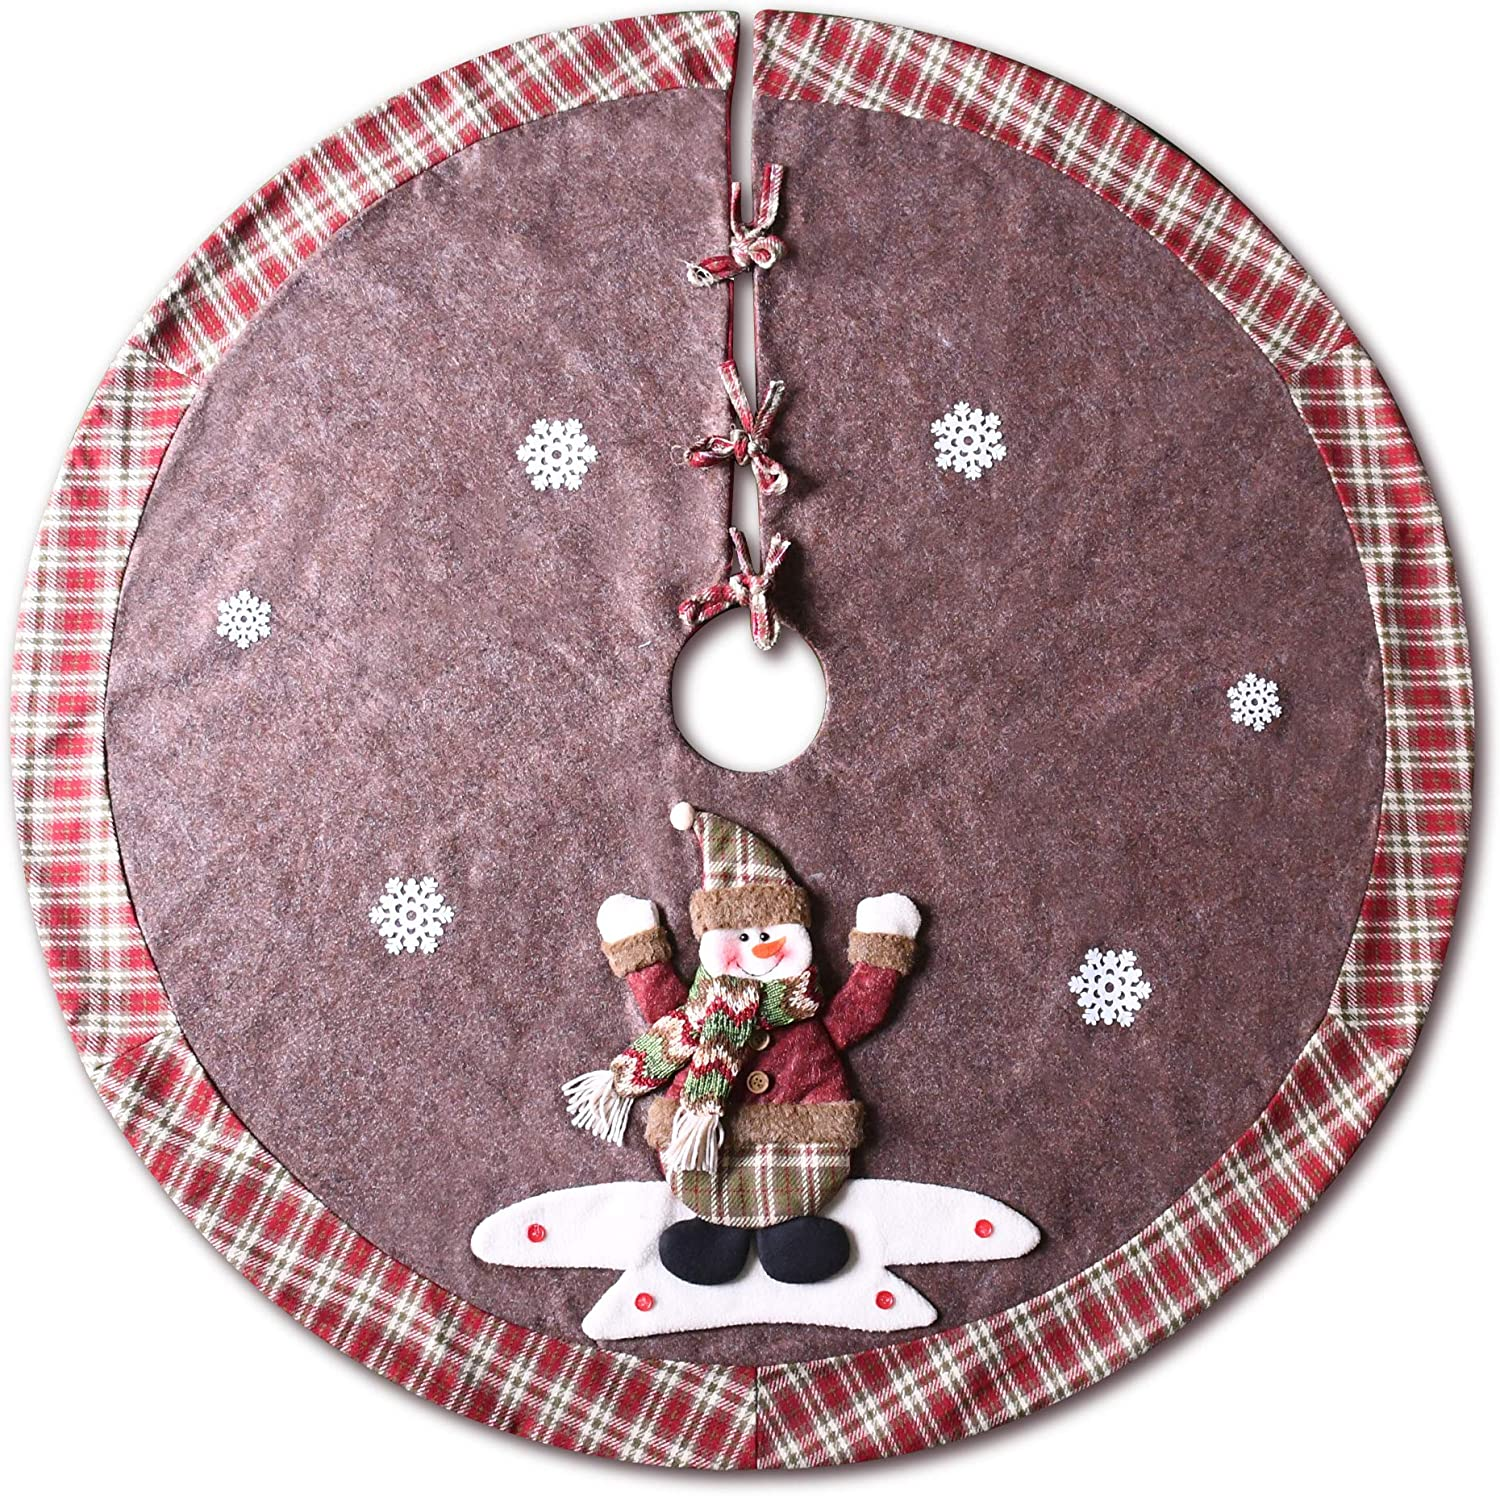 Amazon Com Yuqi Christmas Tree Skirt 48 Inch Plaid Edge Linen Burlap Tree Skirt Mat With 3d Snowman For Indoor Outdoor Christmas Decorations Home And Holiday Party Home Kitchen